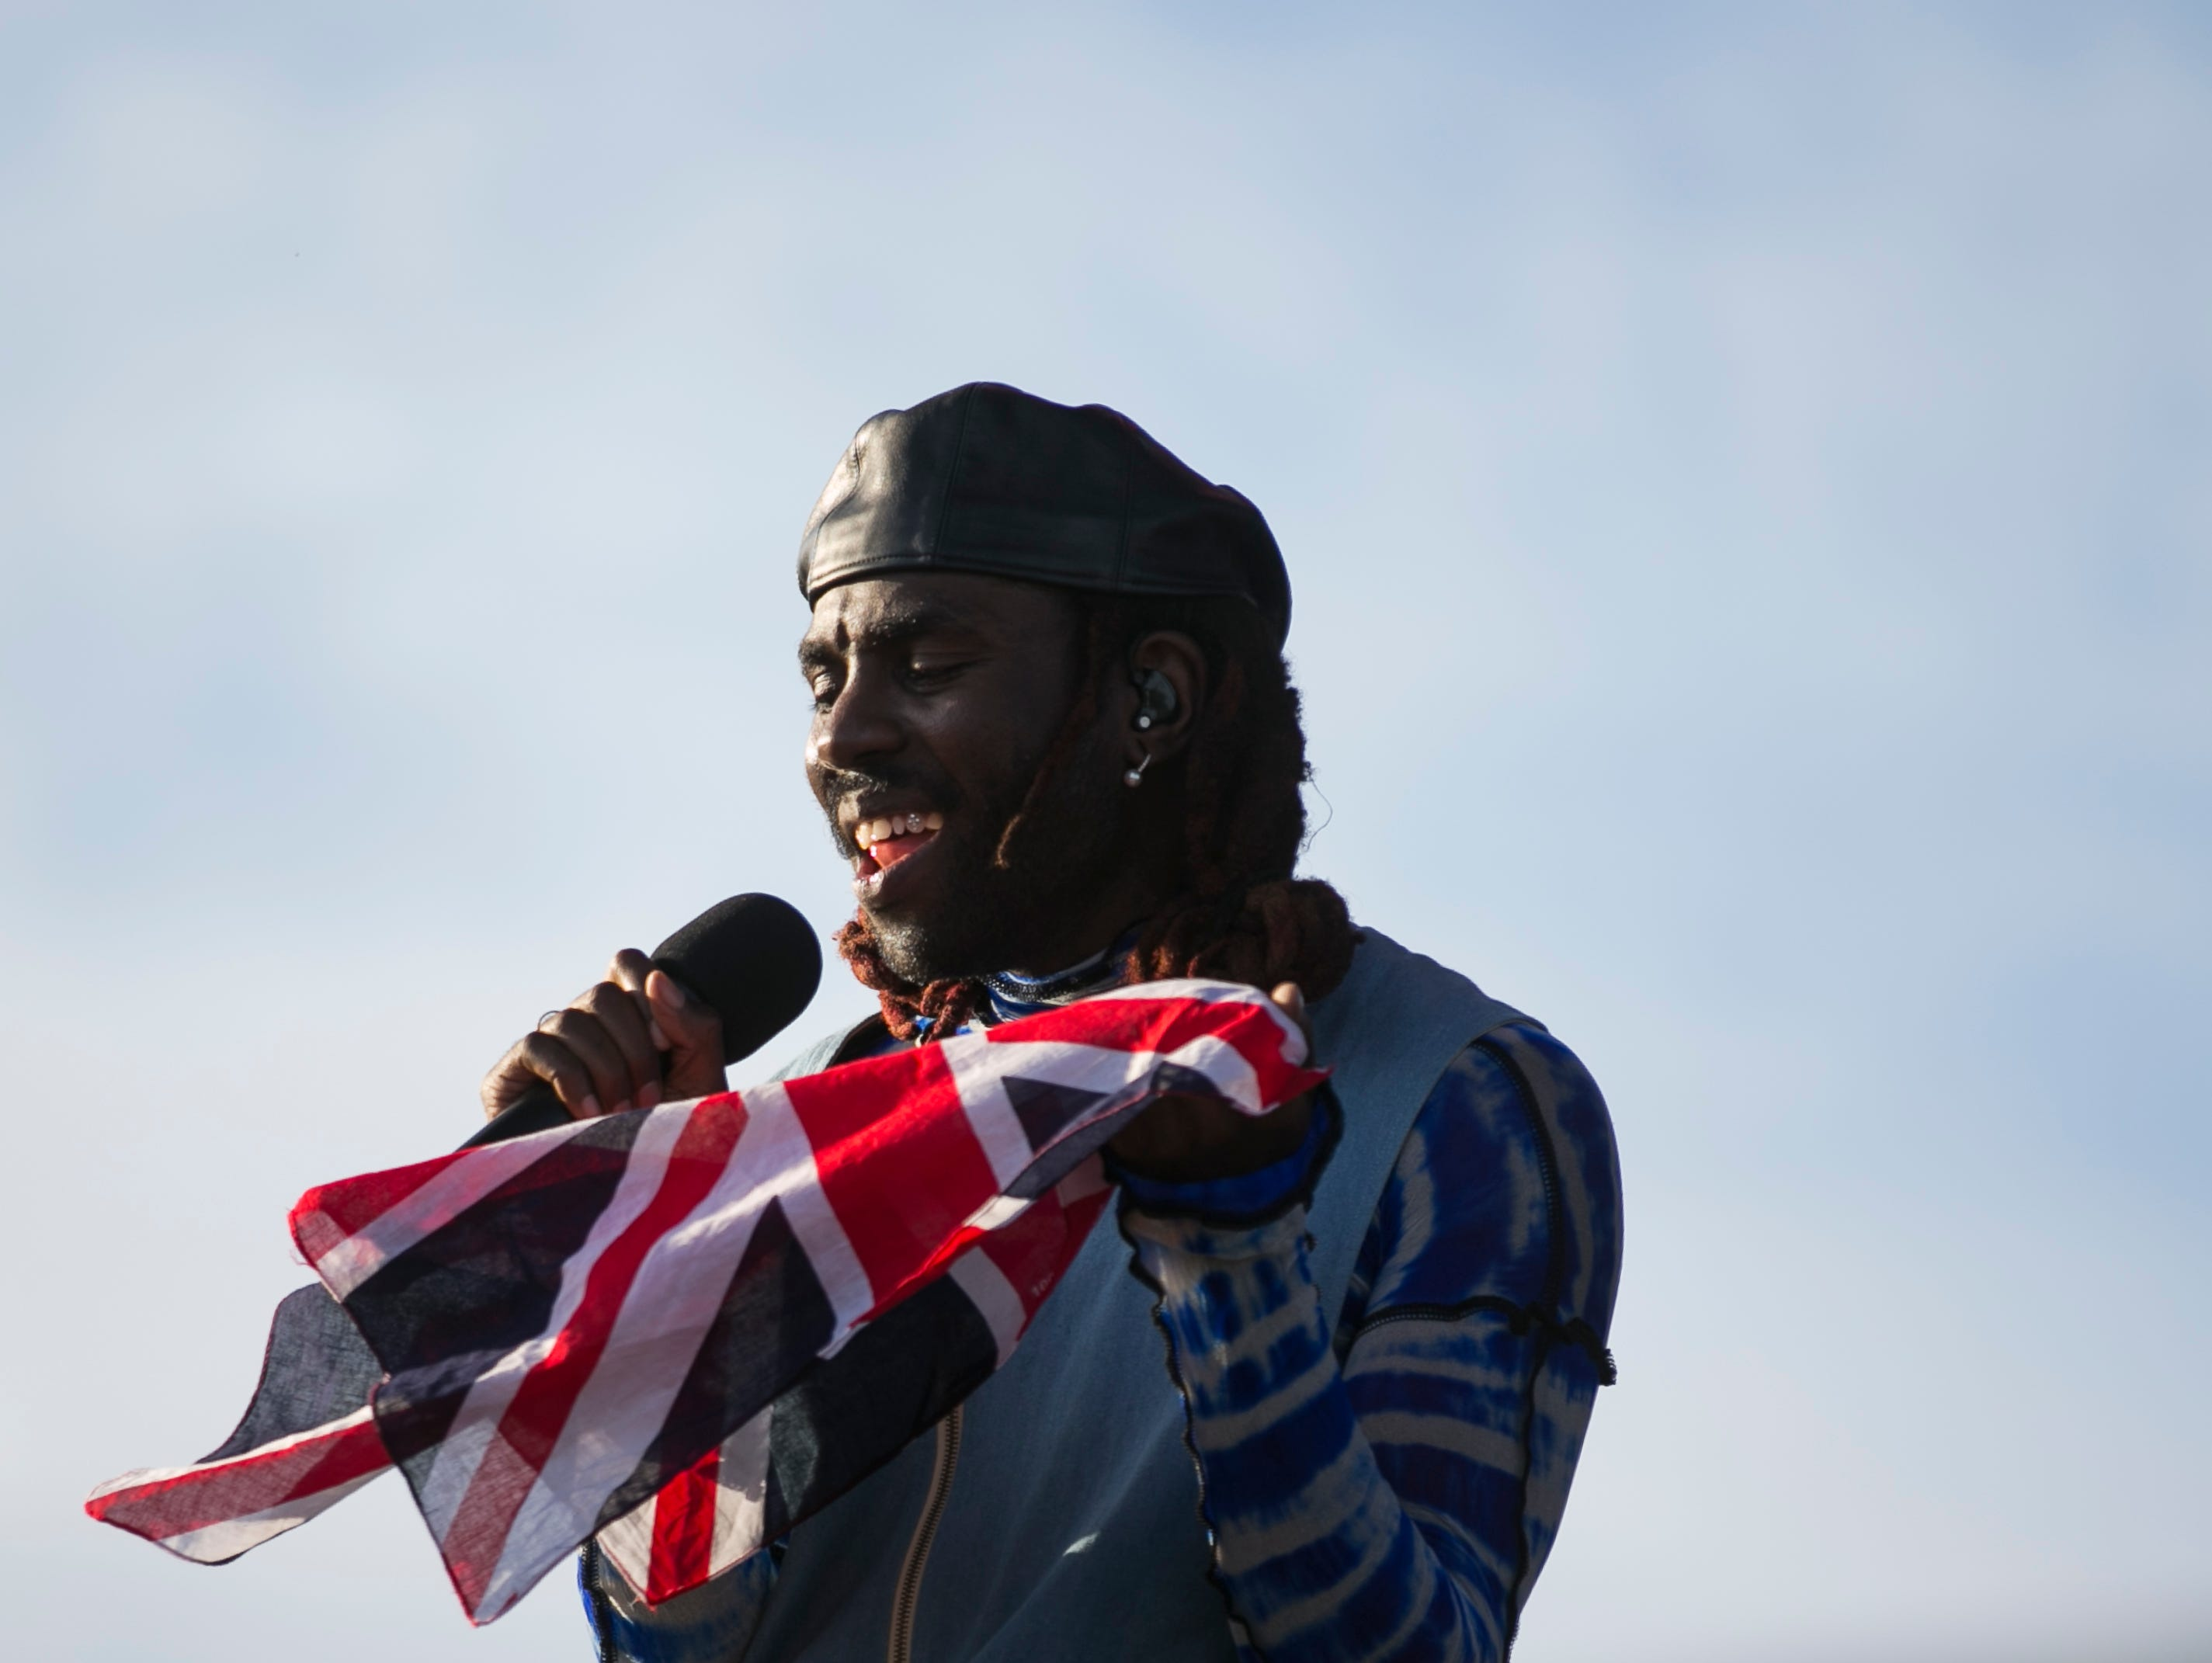 Blood Orange performs on the Outdoor stage at the Coachella Valley Music and Arts Festival in Indio, Calif., on Sunday, April 14, 2019.